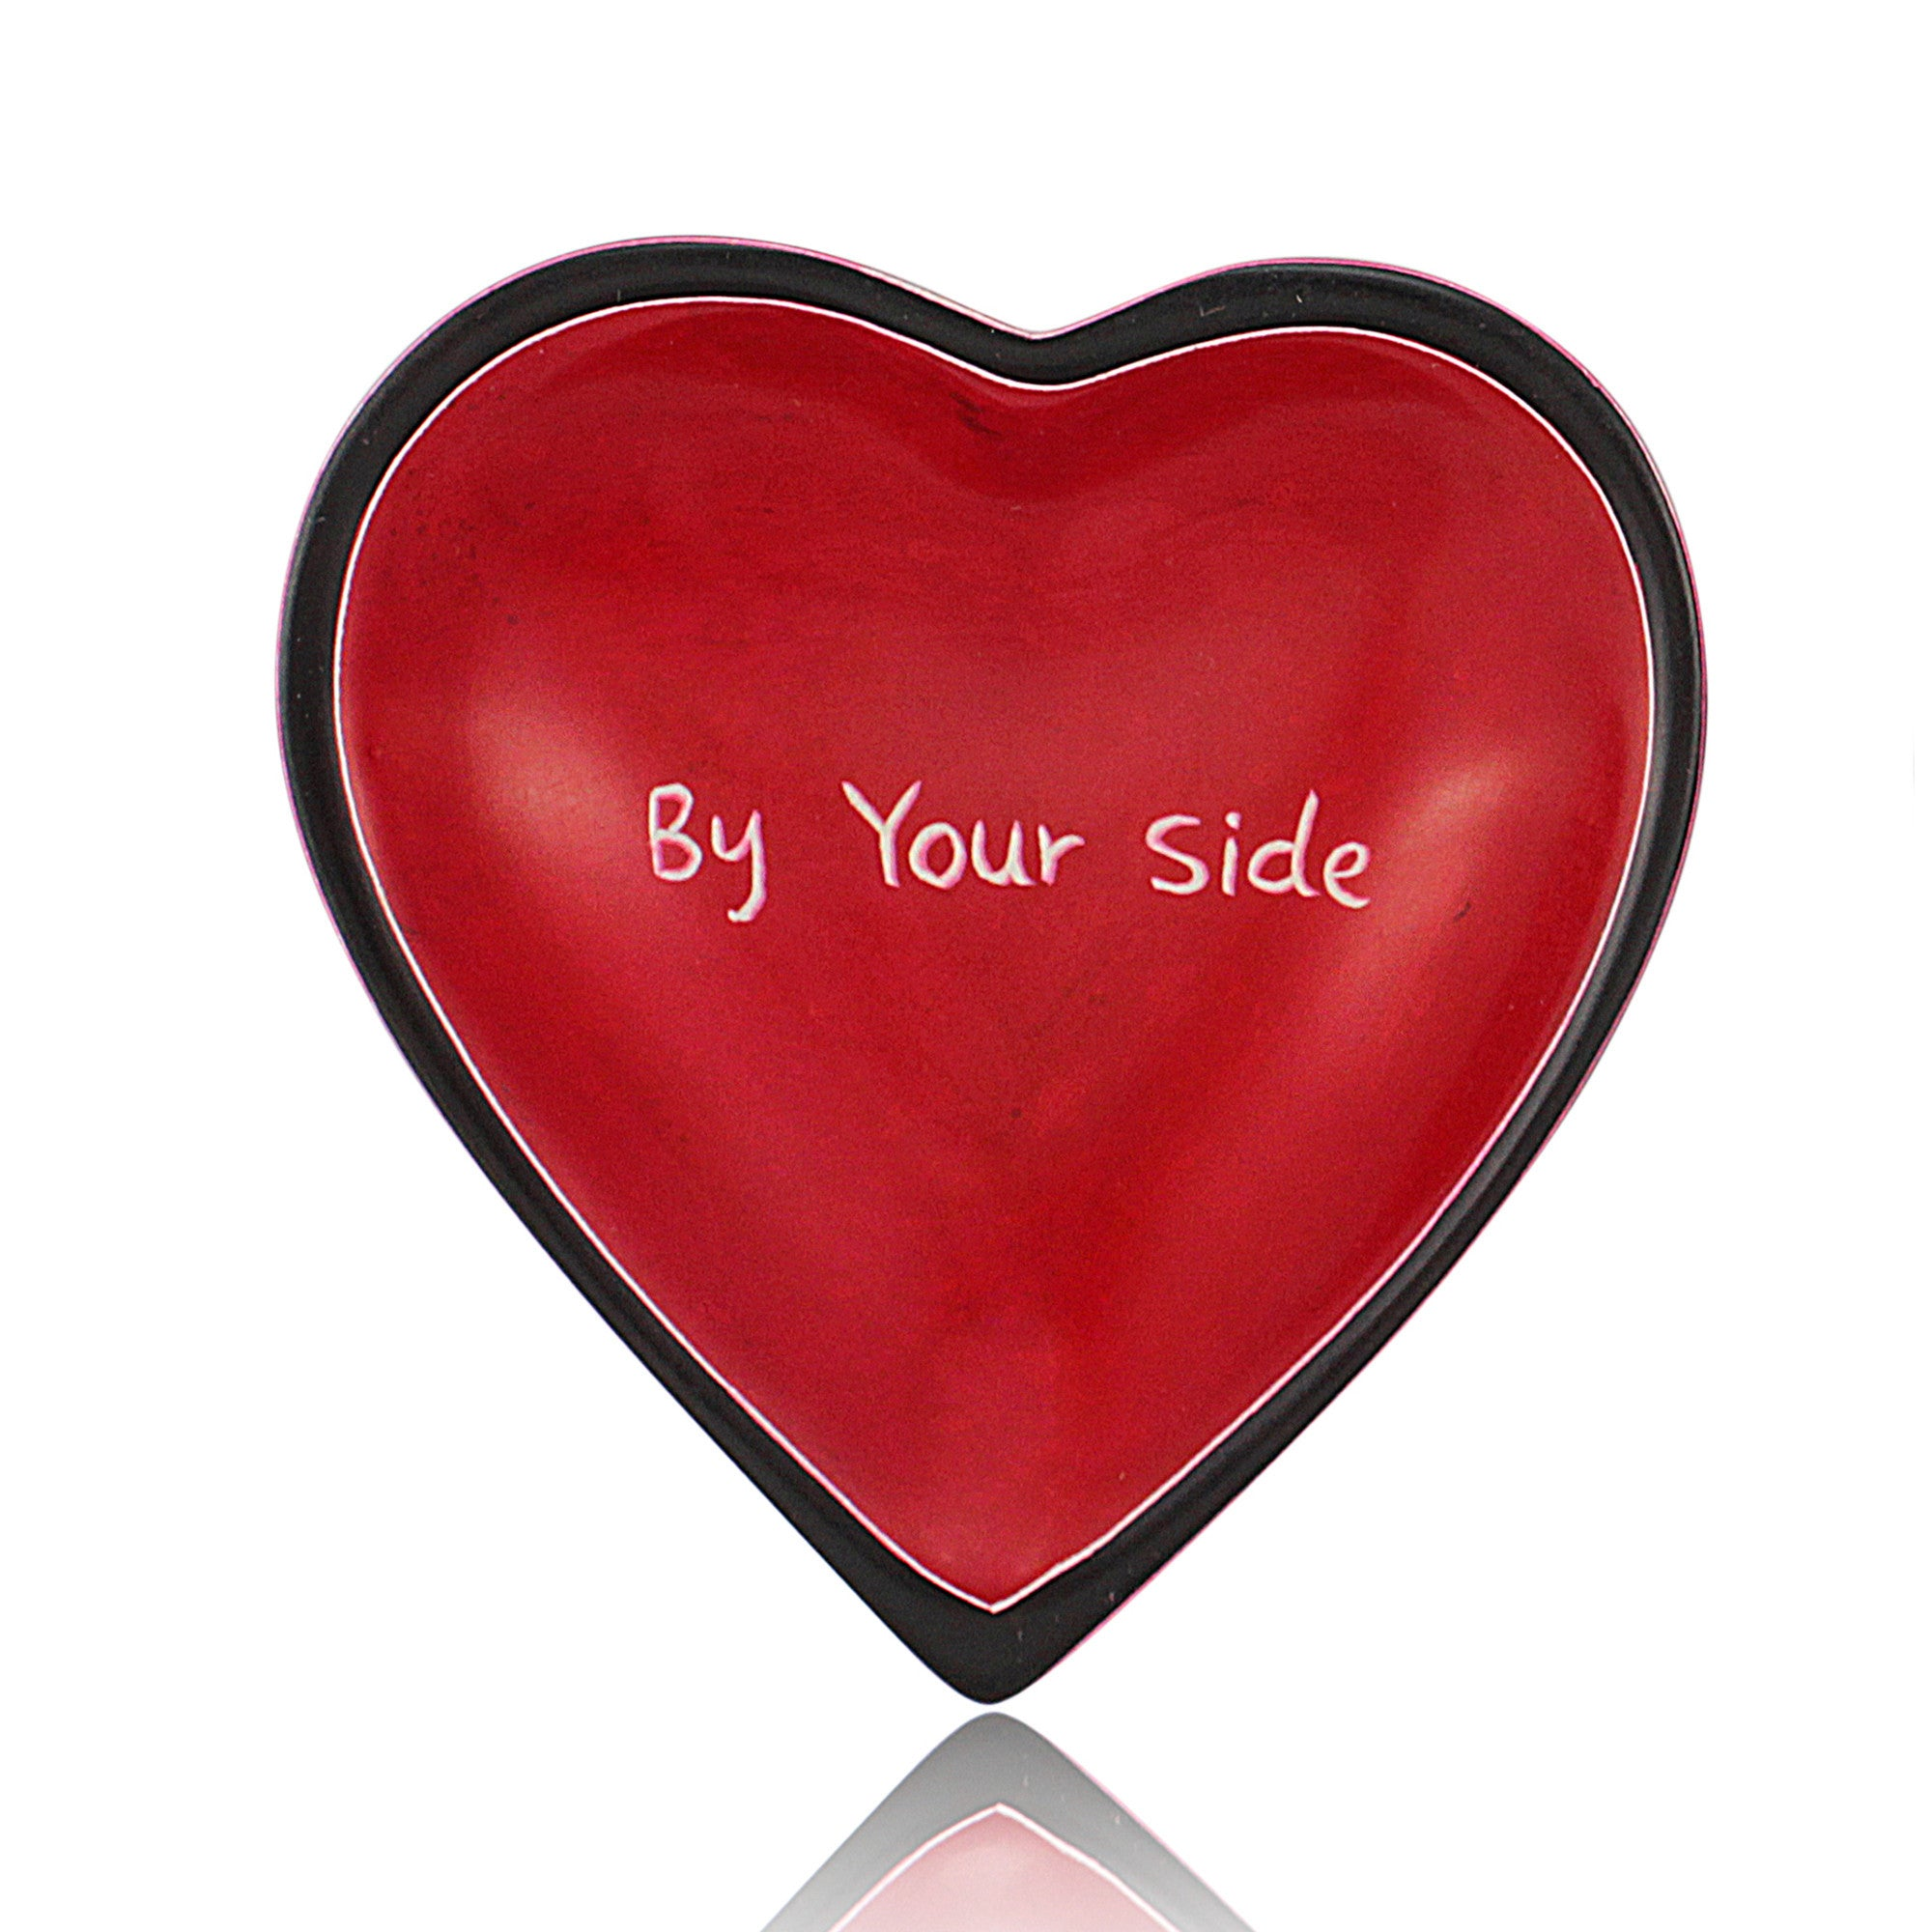 By Your Side Heart Shaped Soap Stone Dish by Venture Imports